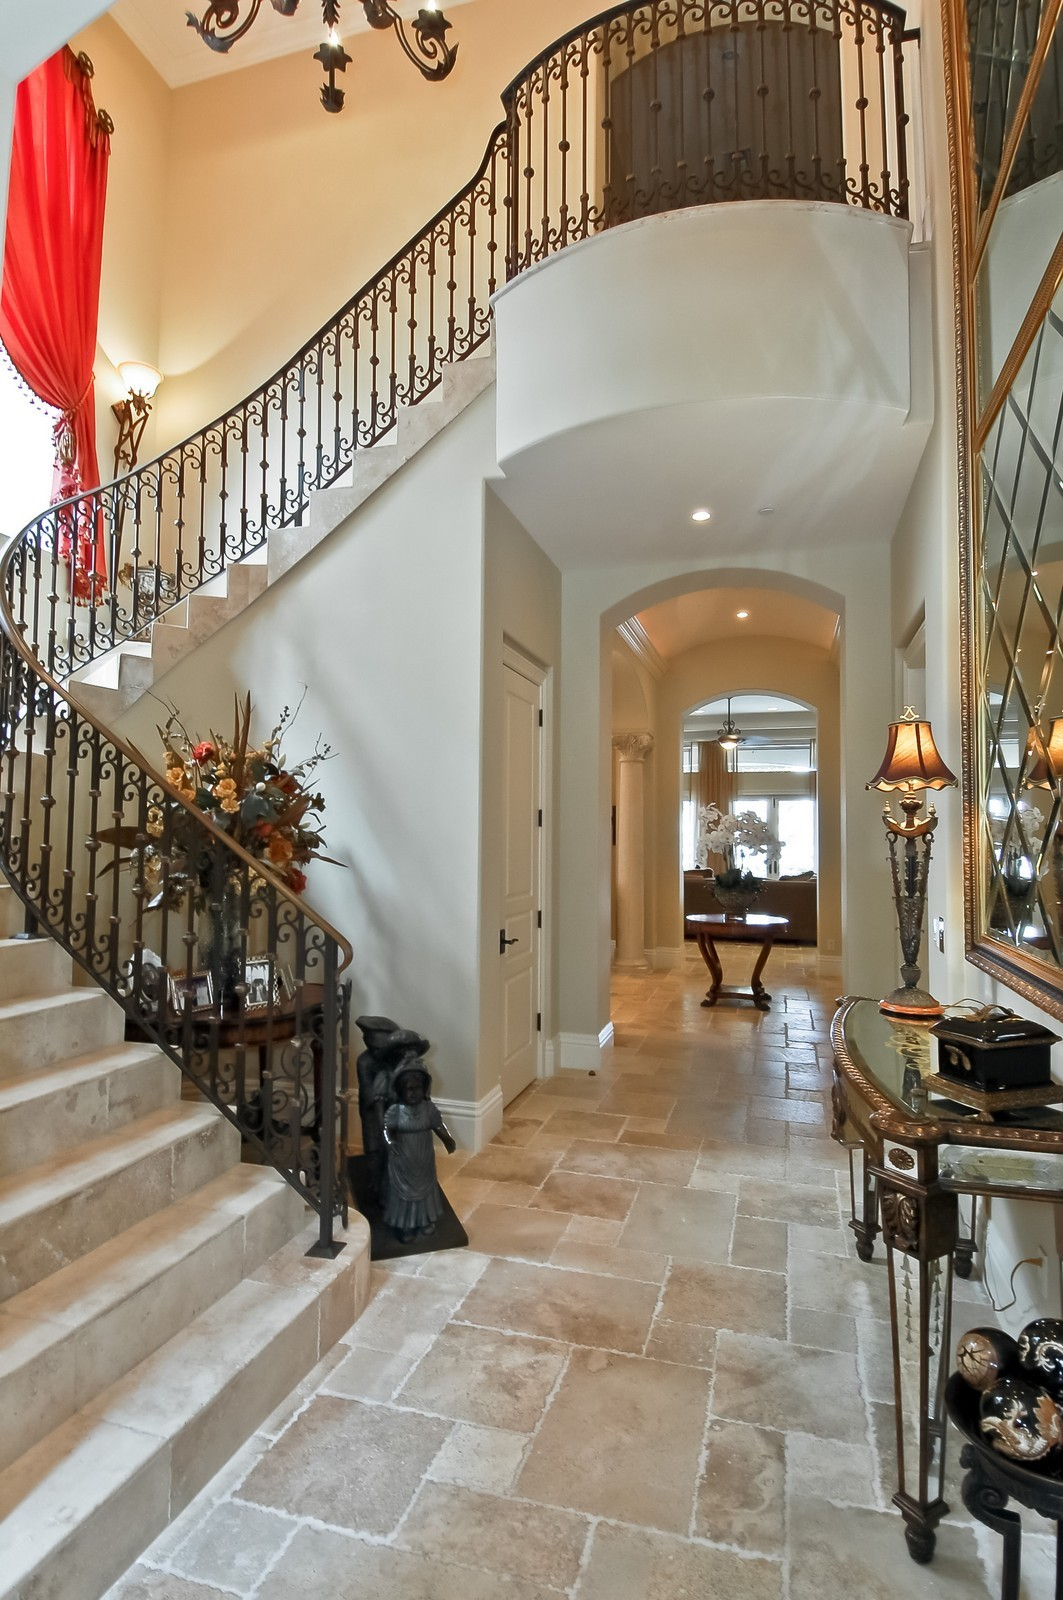 Real Estate Photography - 4022 S Ocean Blvd, Highland Beach, FL, 33487 - Staircase